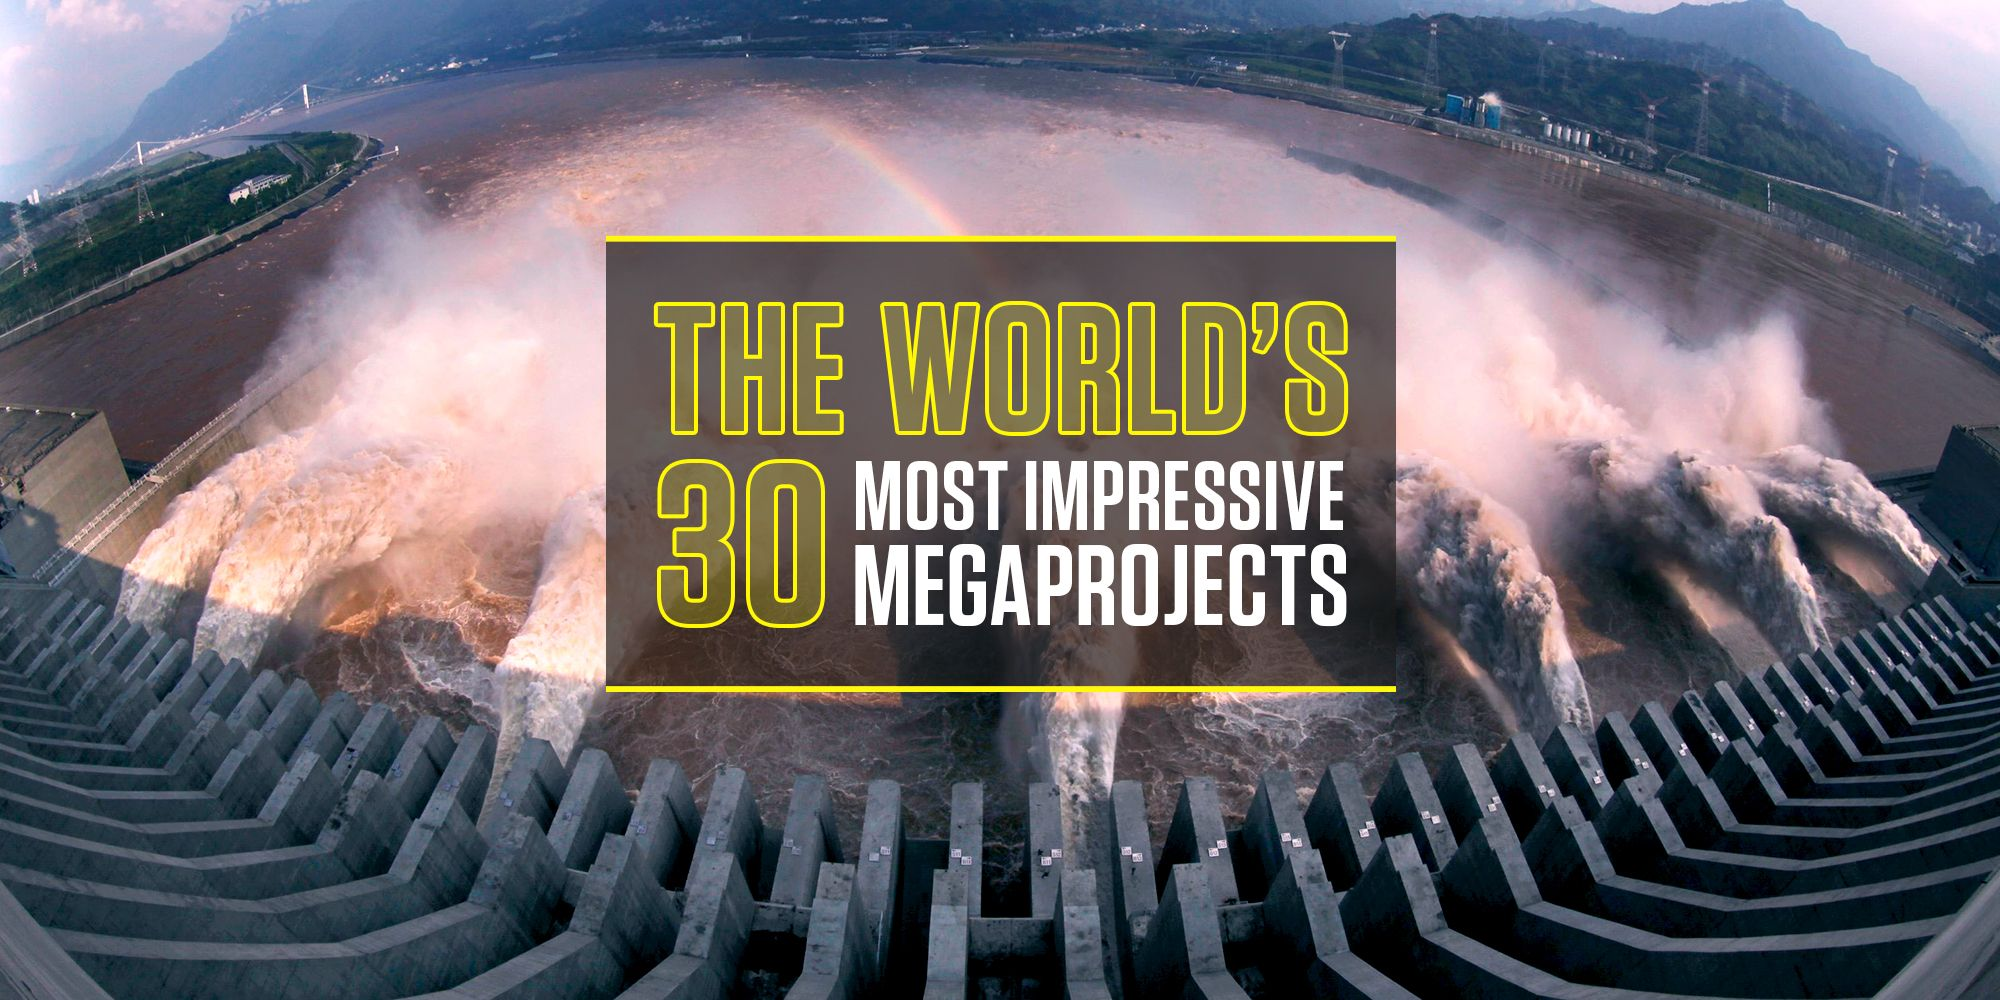 The World's 30 Most Impressive Megaprojects